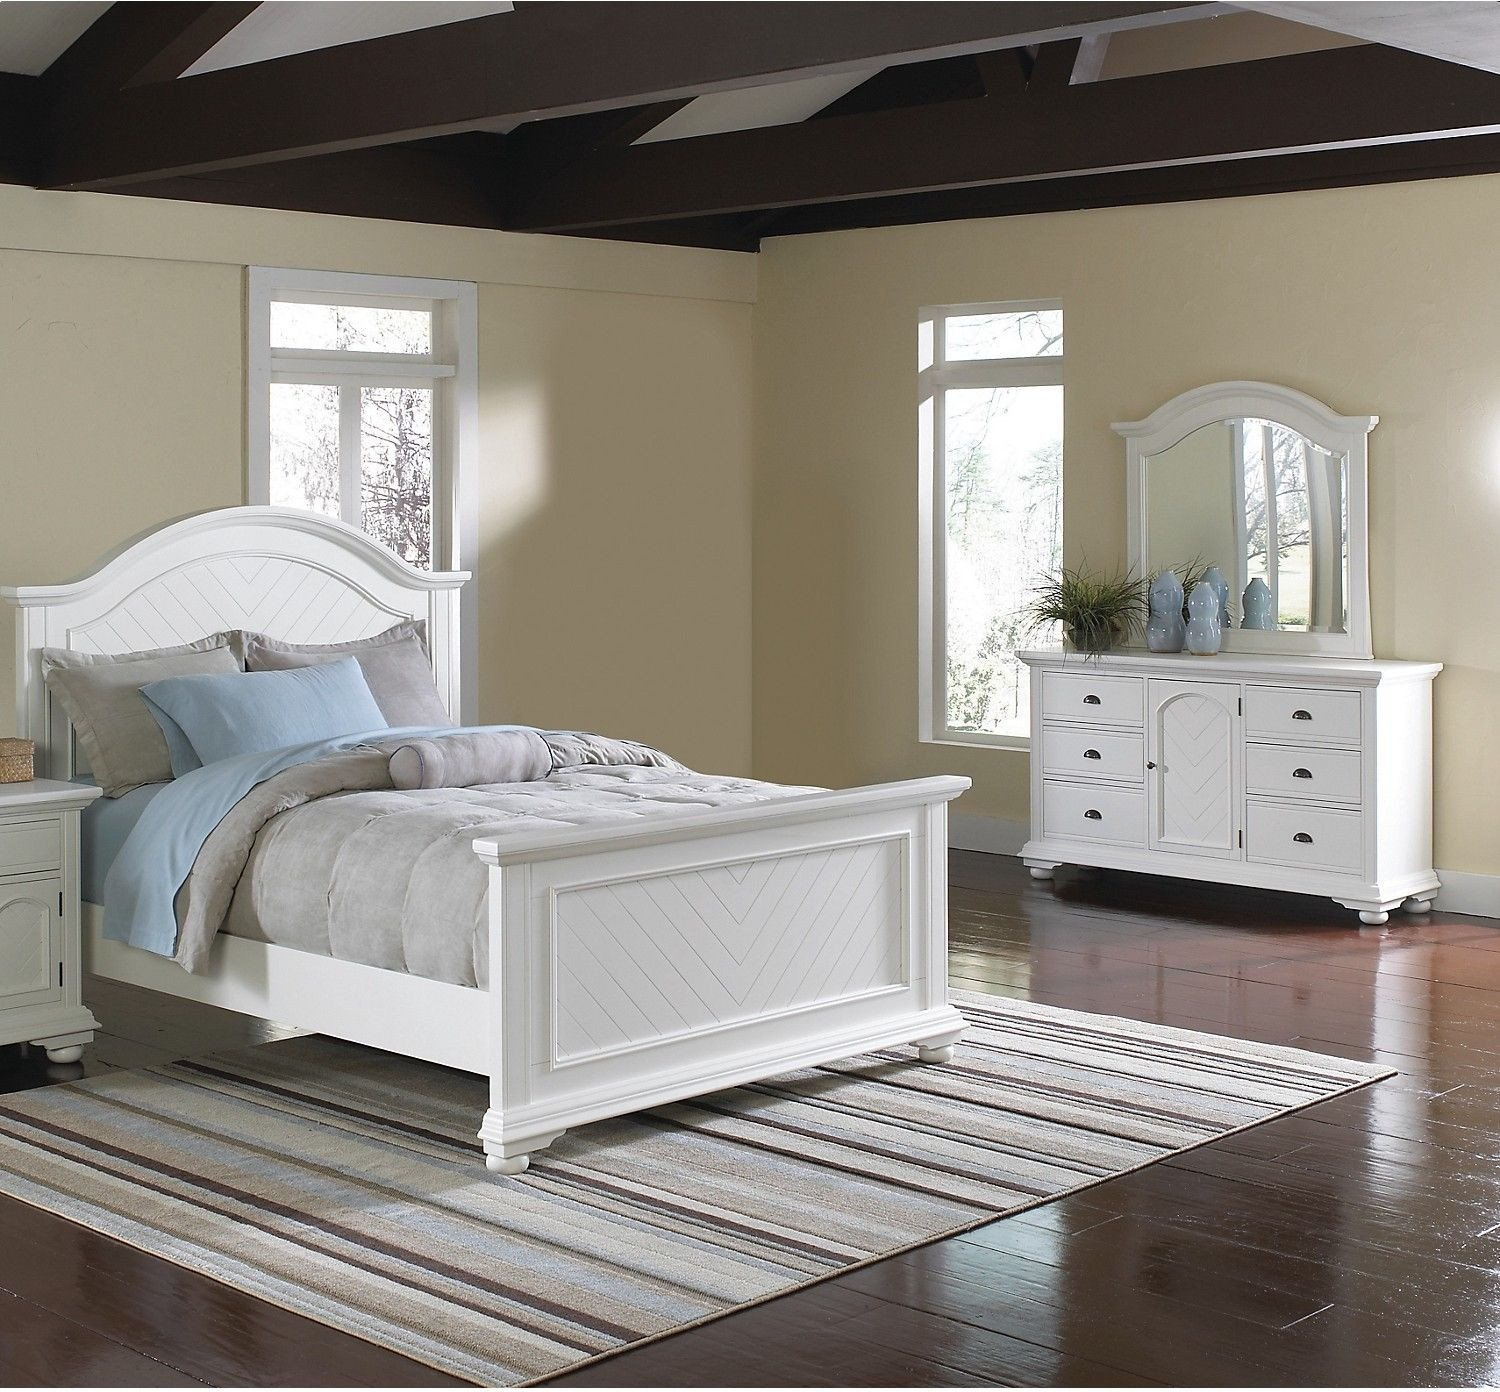 Off White Bedroom Furniture New Add A Fresh New Look to Your Home with This Brook Bedroom